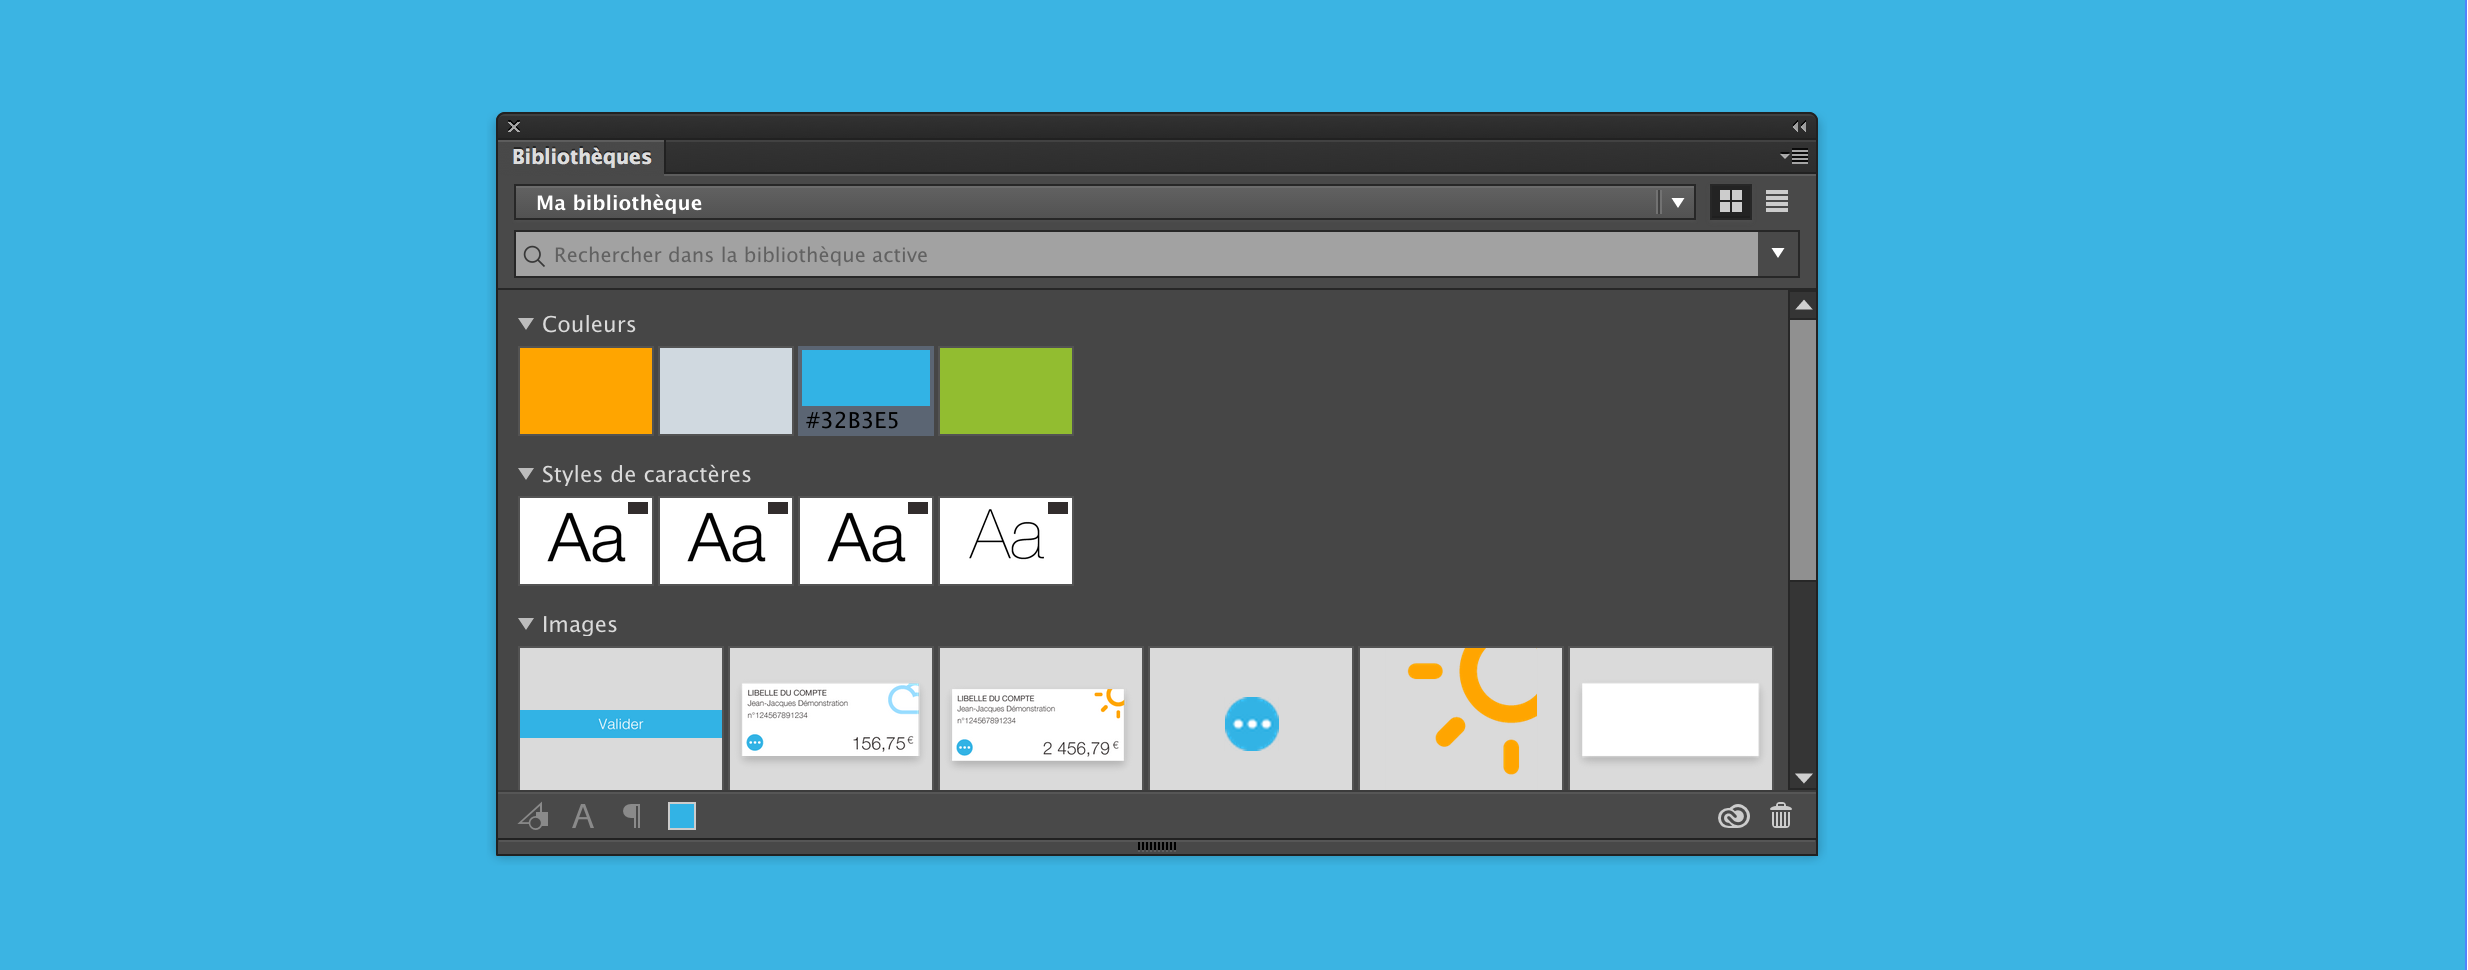 How to use Adobe CC shared libraries and make the most of it?